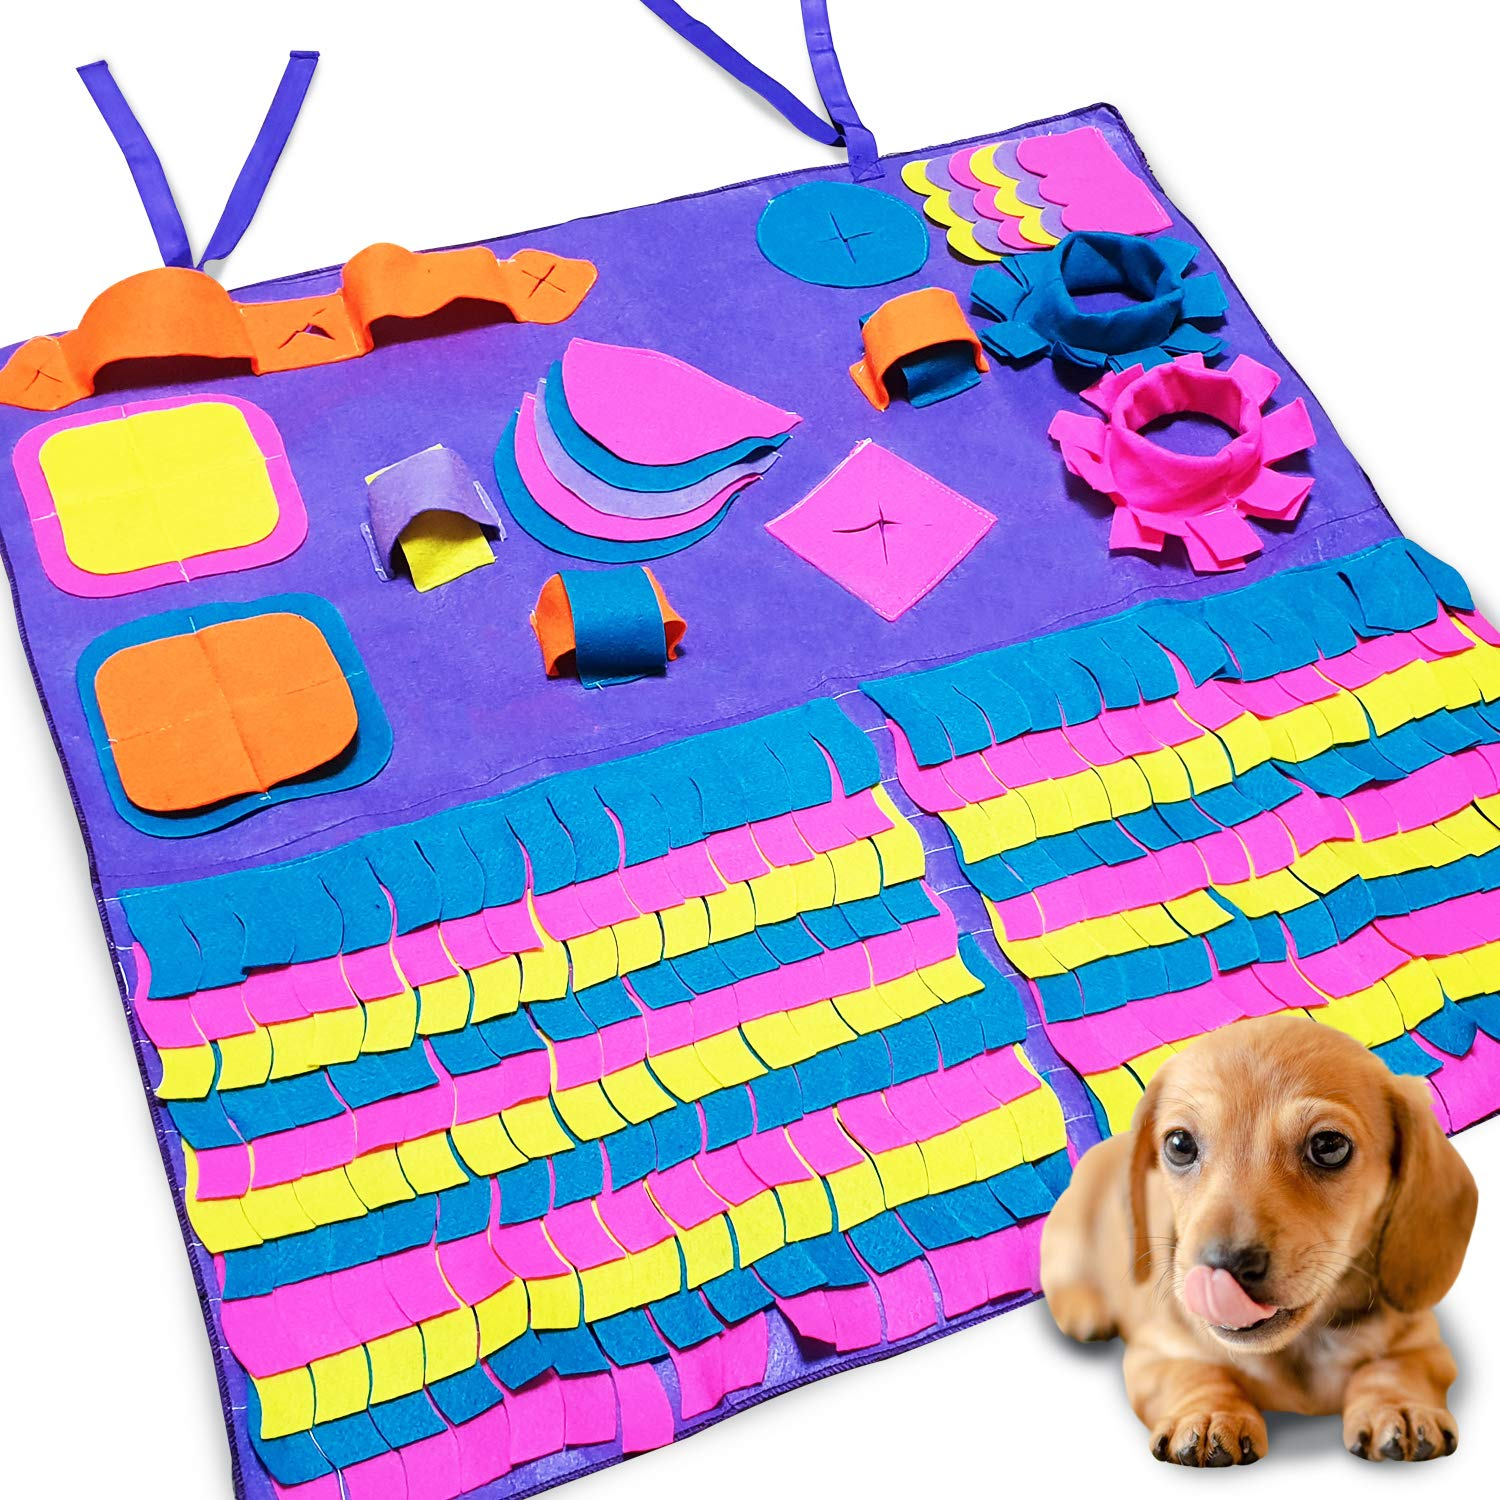 Dog Food Mat by Seonova Snuffle Mat - Interactive Puzzle Toys Feeder for Dogs - Slow Feeding Mat - Stimulates Brain & Engages Smell - Machine Washable - All Breeds & Sizes - Nosework & Rooting Mat by SEONOVA